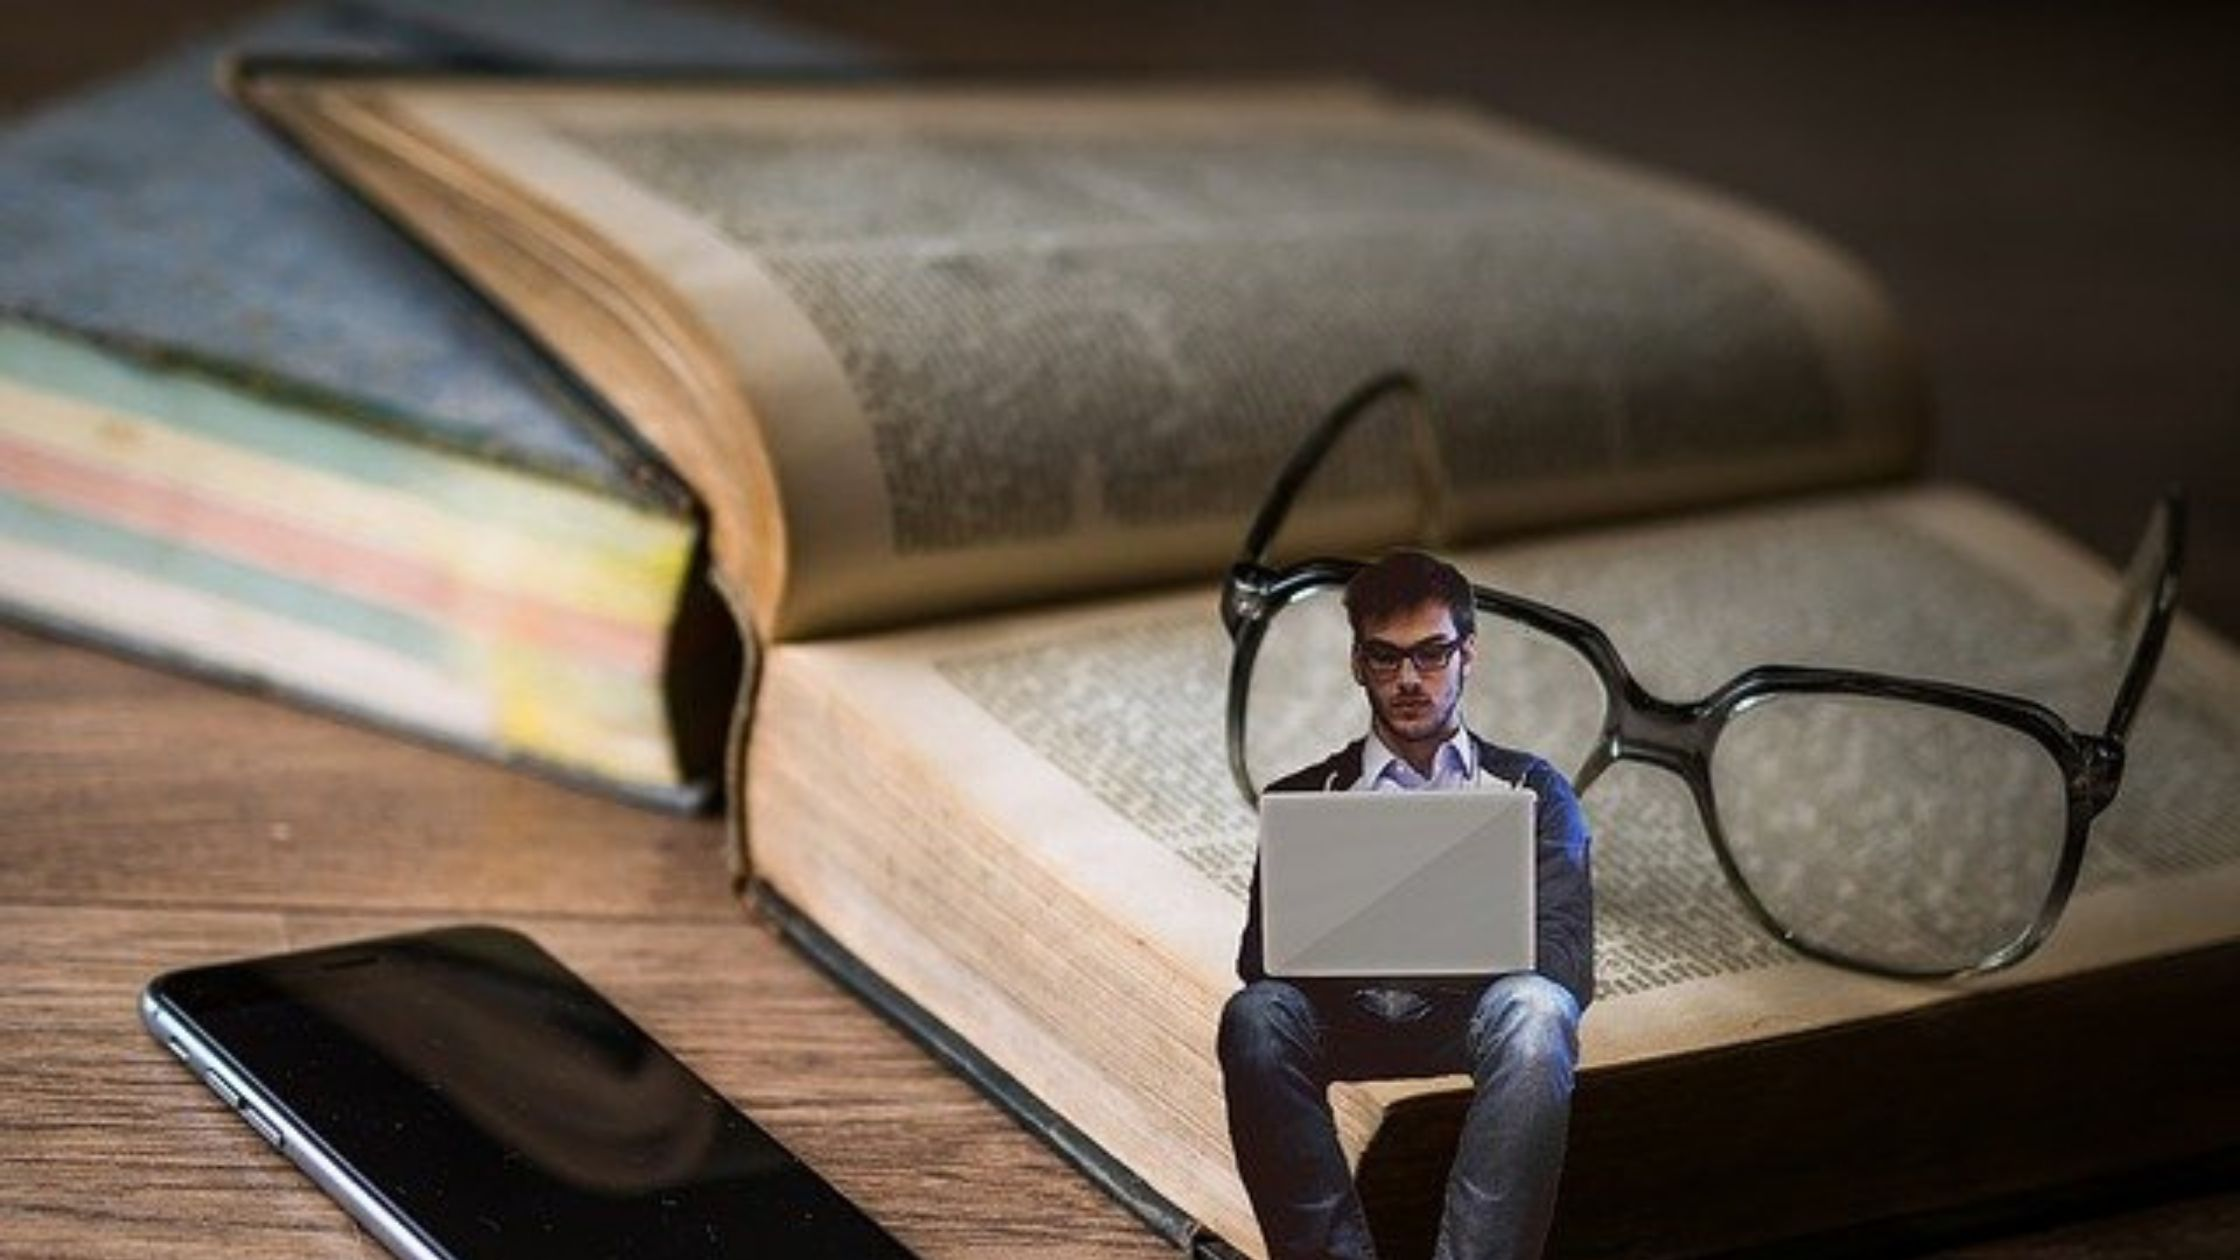 Smarter Ways to Study Effectively at Home